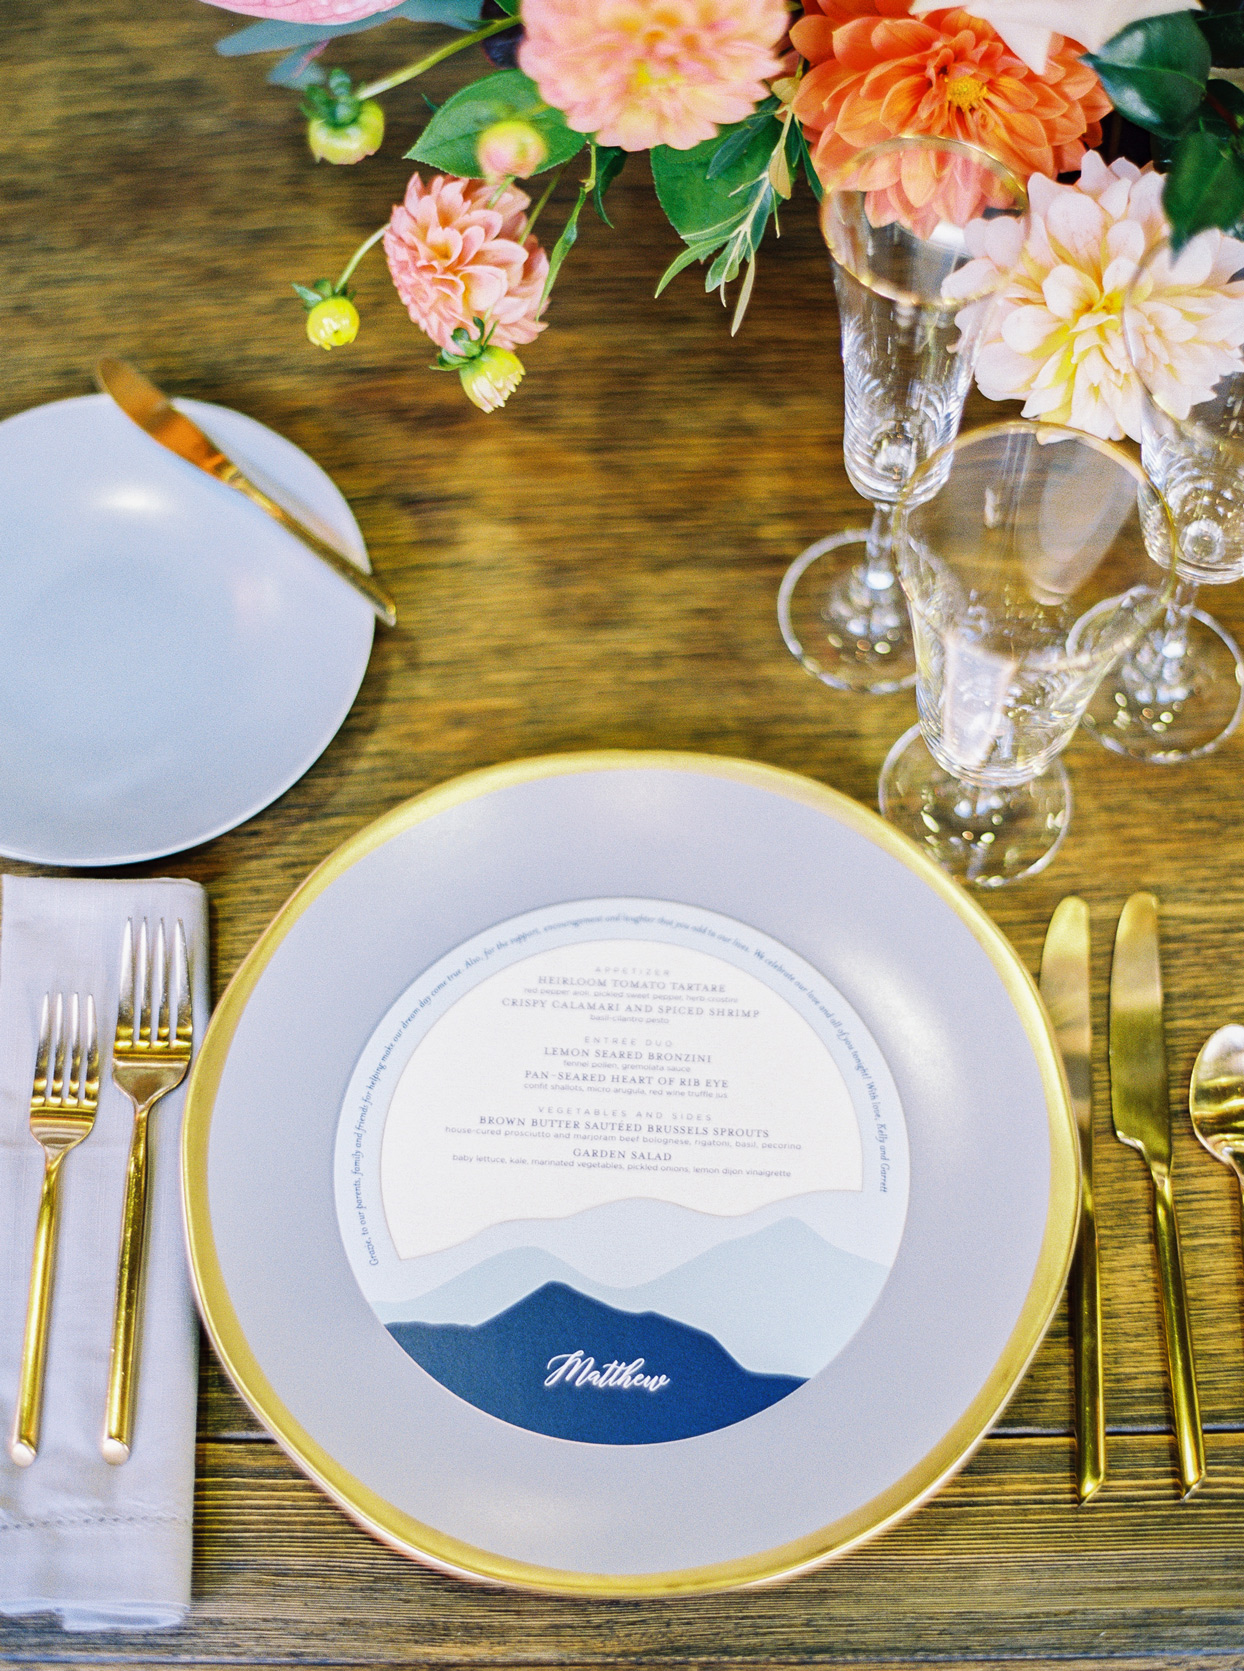 Round menu on gold rimmed charger plate